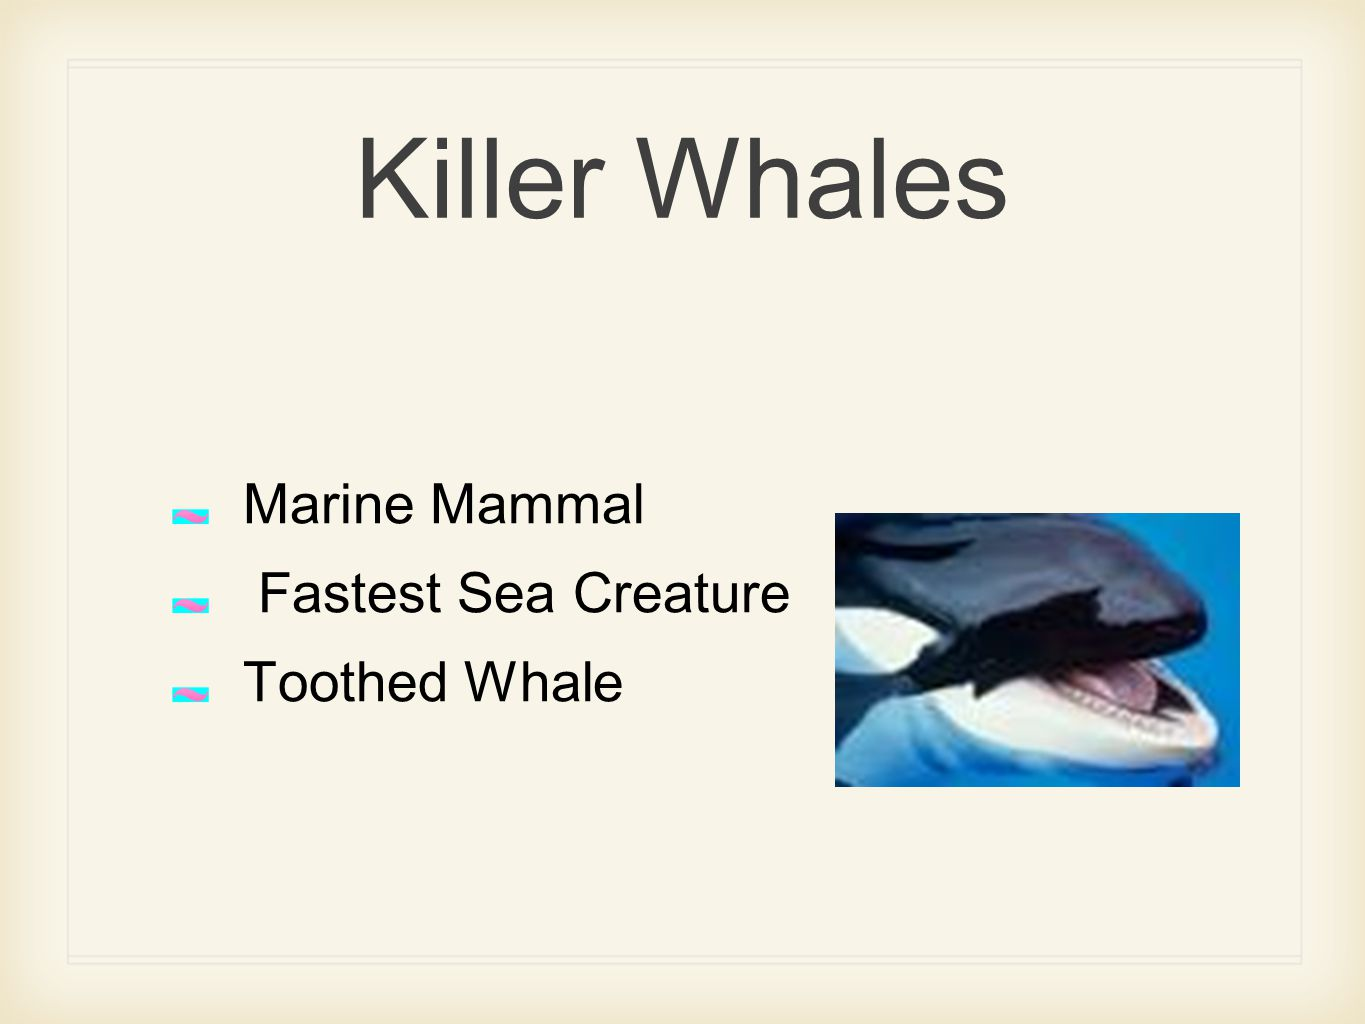 Killer Whales Marine Mammal Fastest Sea Creature Toothed Whale